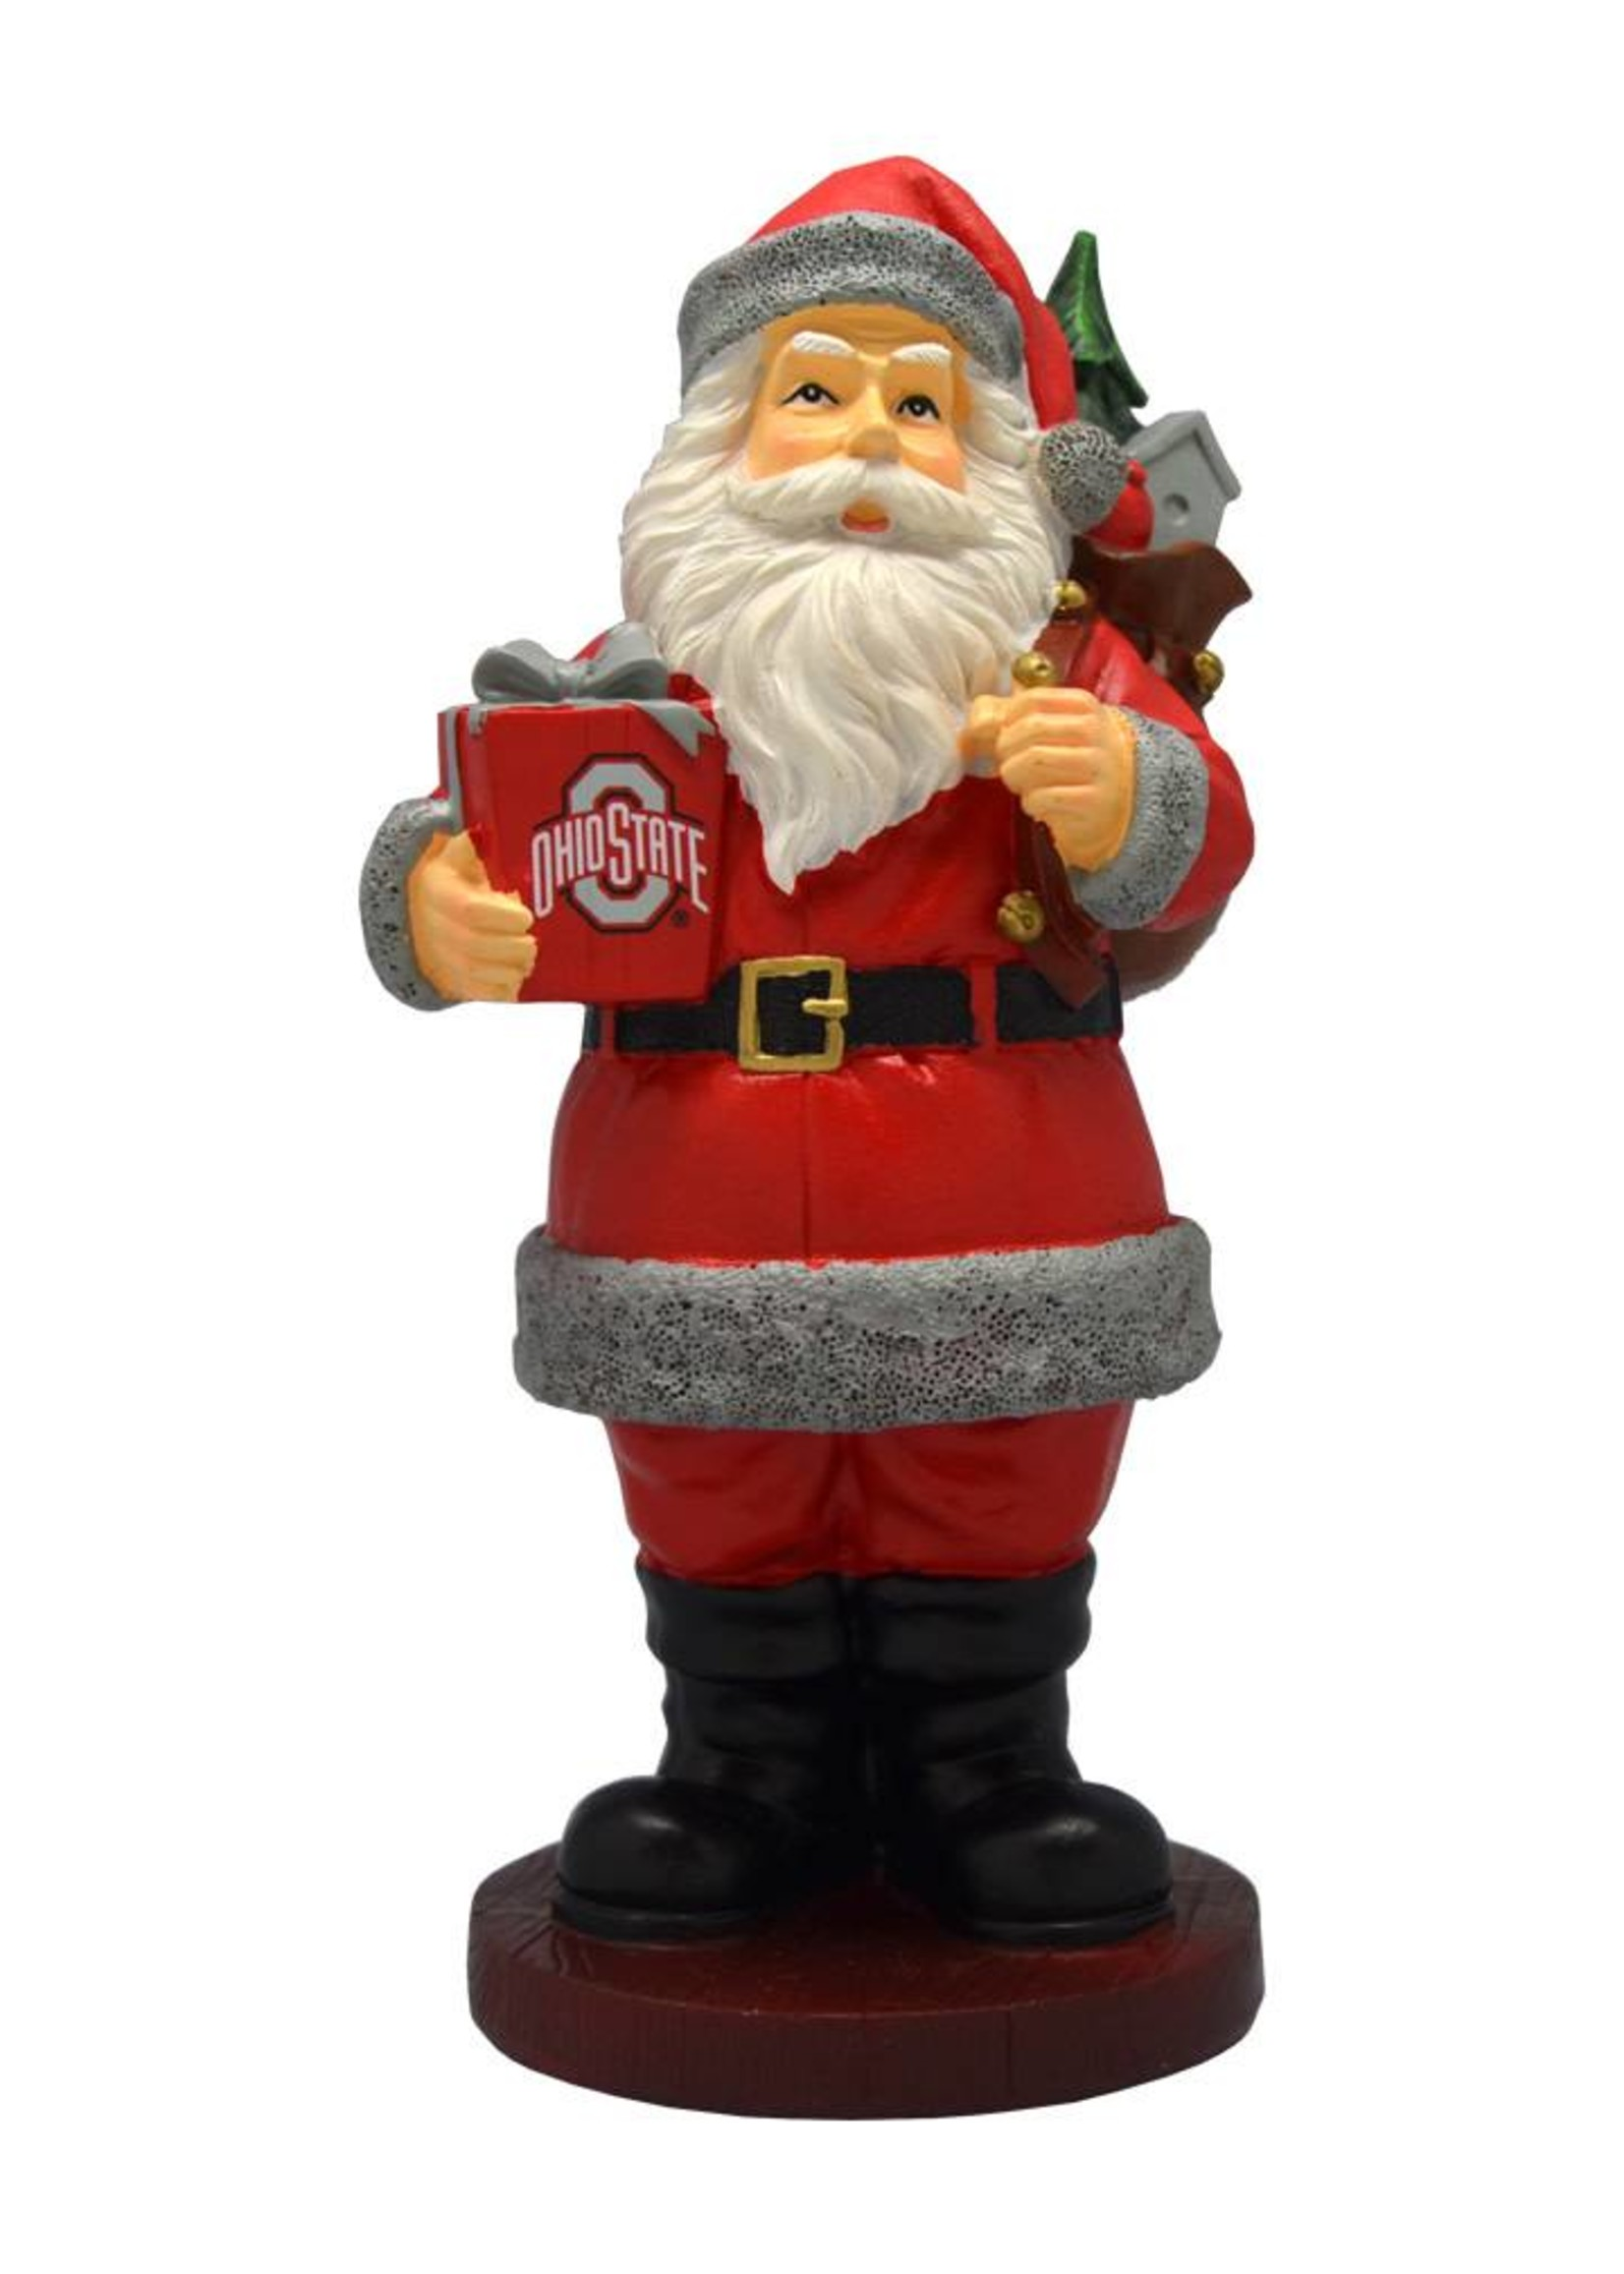 Ohio State Santa with Gift Figurine